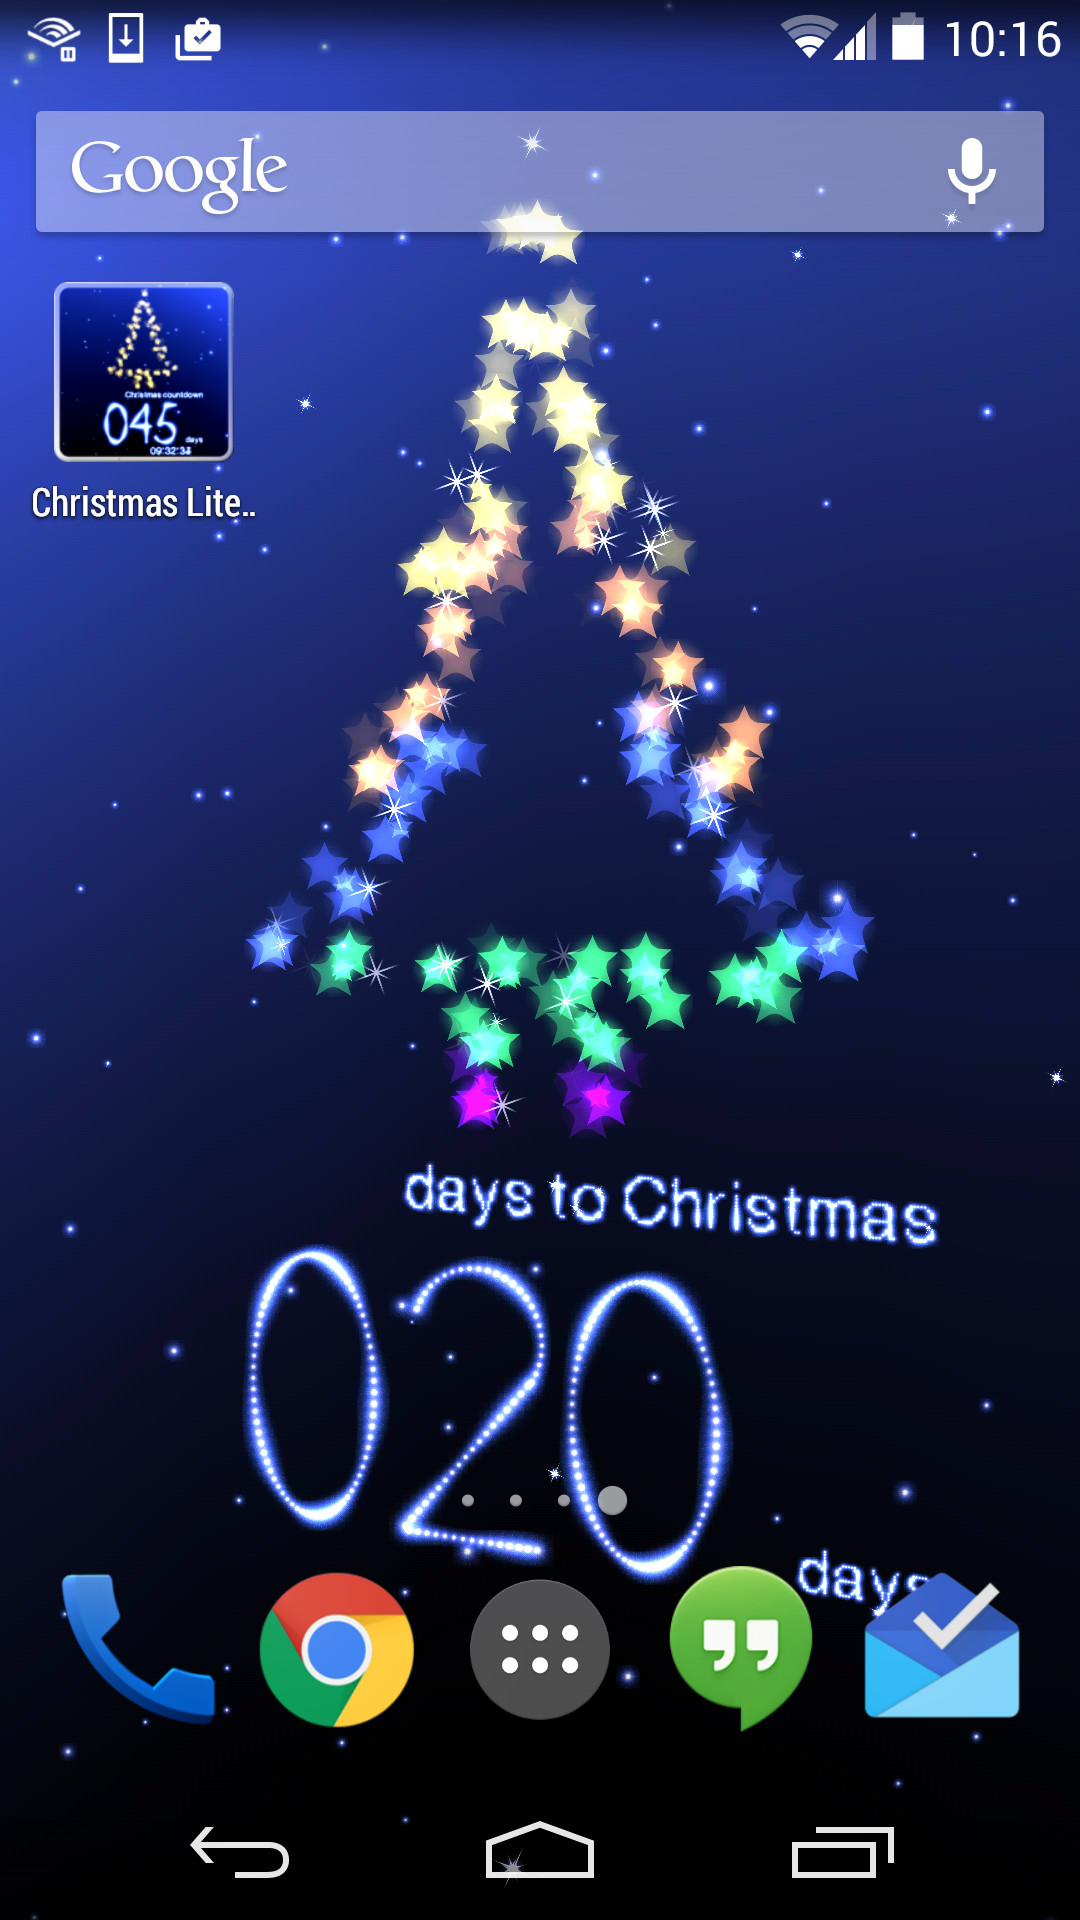 Calendar Countdown Wallpaper : Countdown to christmas wallpaper images